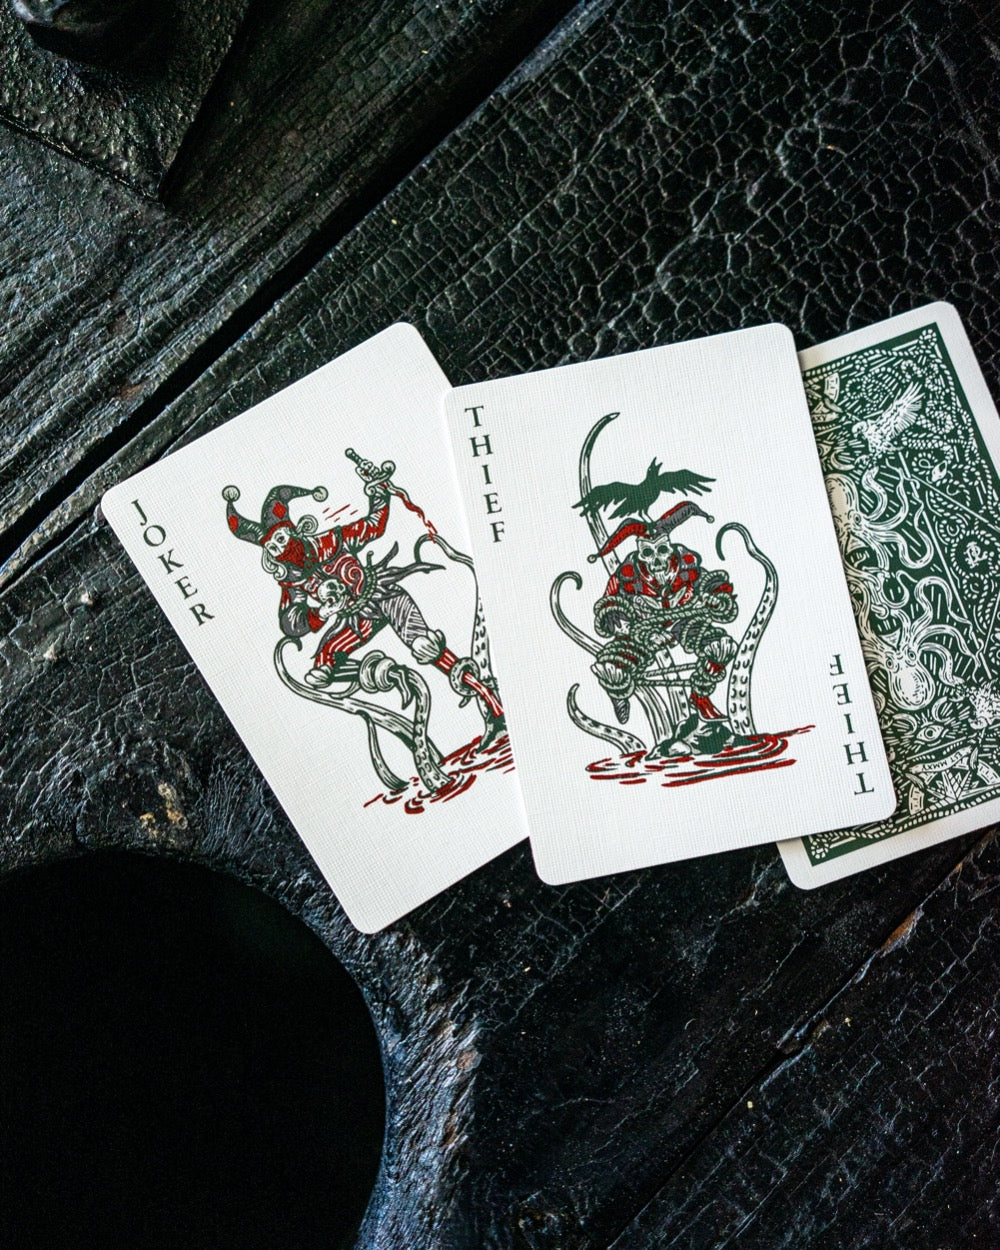 joker and the thief cards are pirate themed and scattered on surface